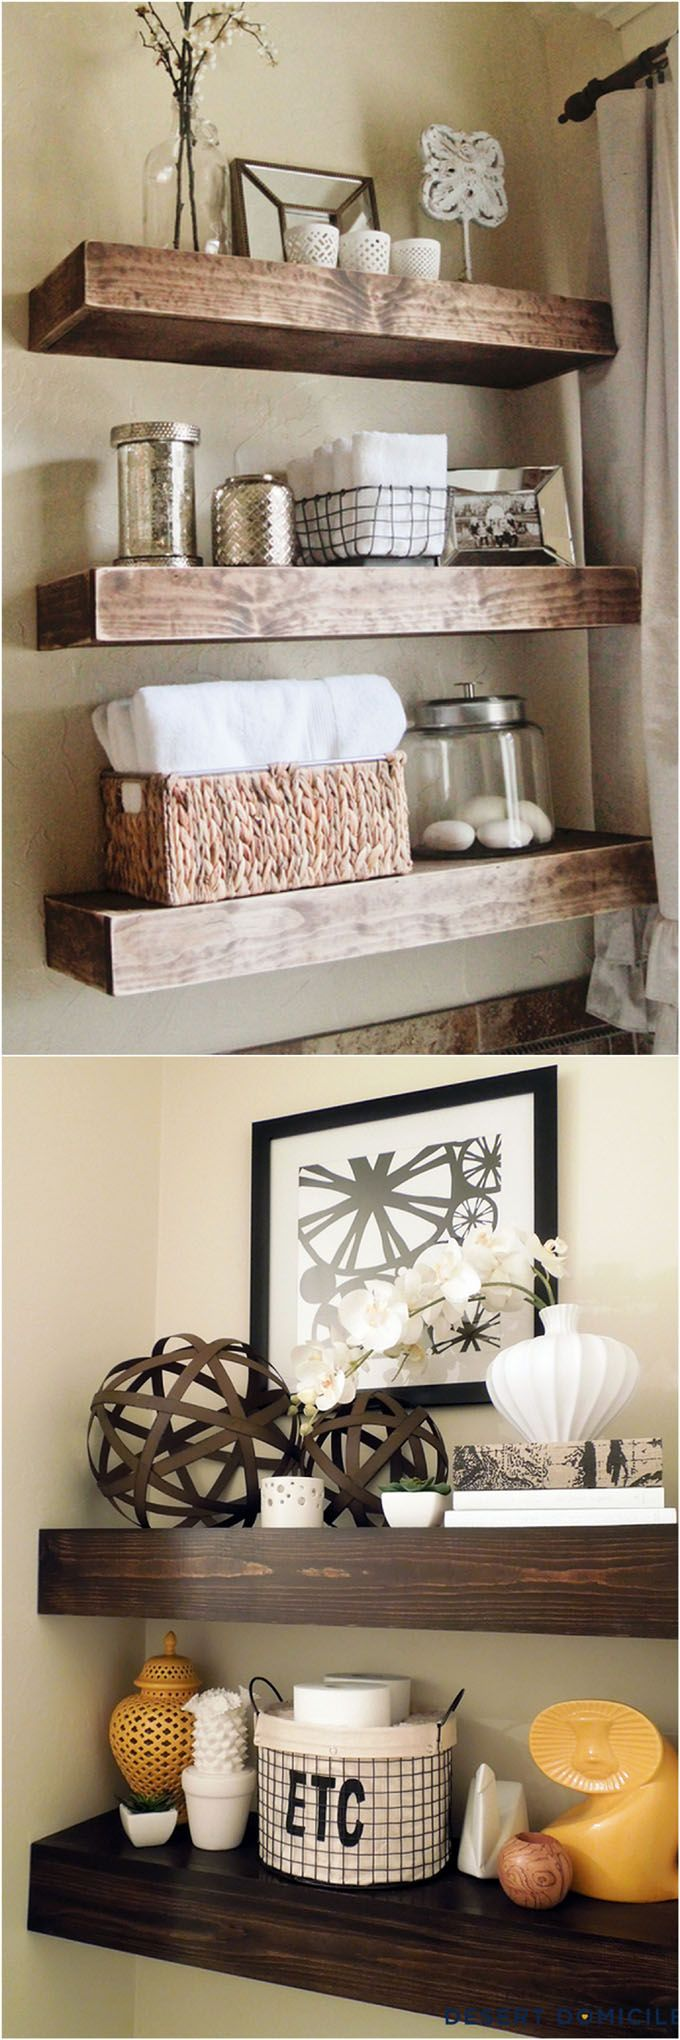 16 easy tutorials on building beautiful floating shelves and wall shelves for your home! Check out all the gorgeous brackets, supports, finishes and design inspirations! | www.homeology.co.za